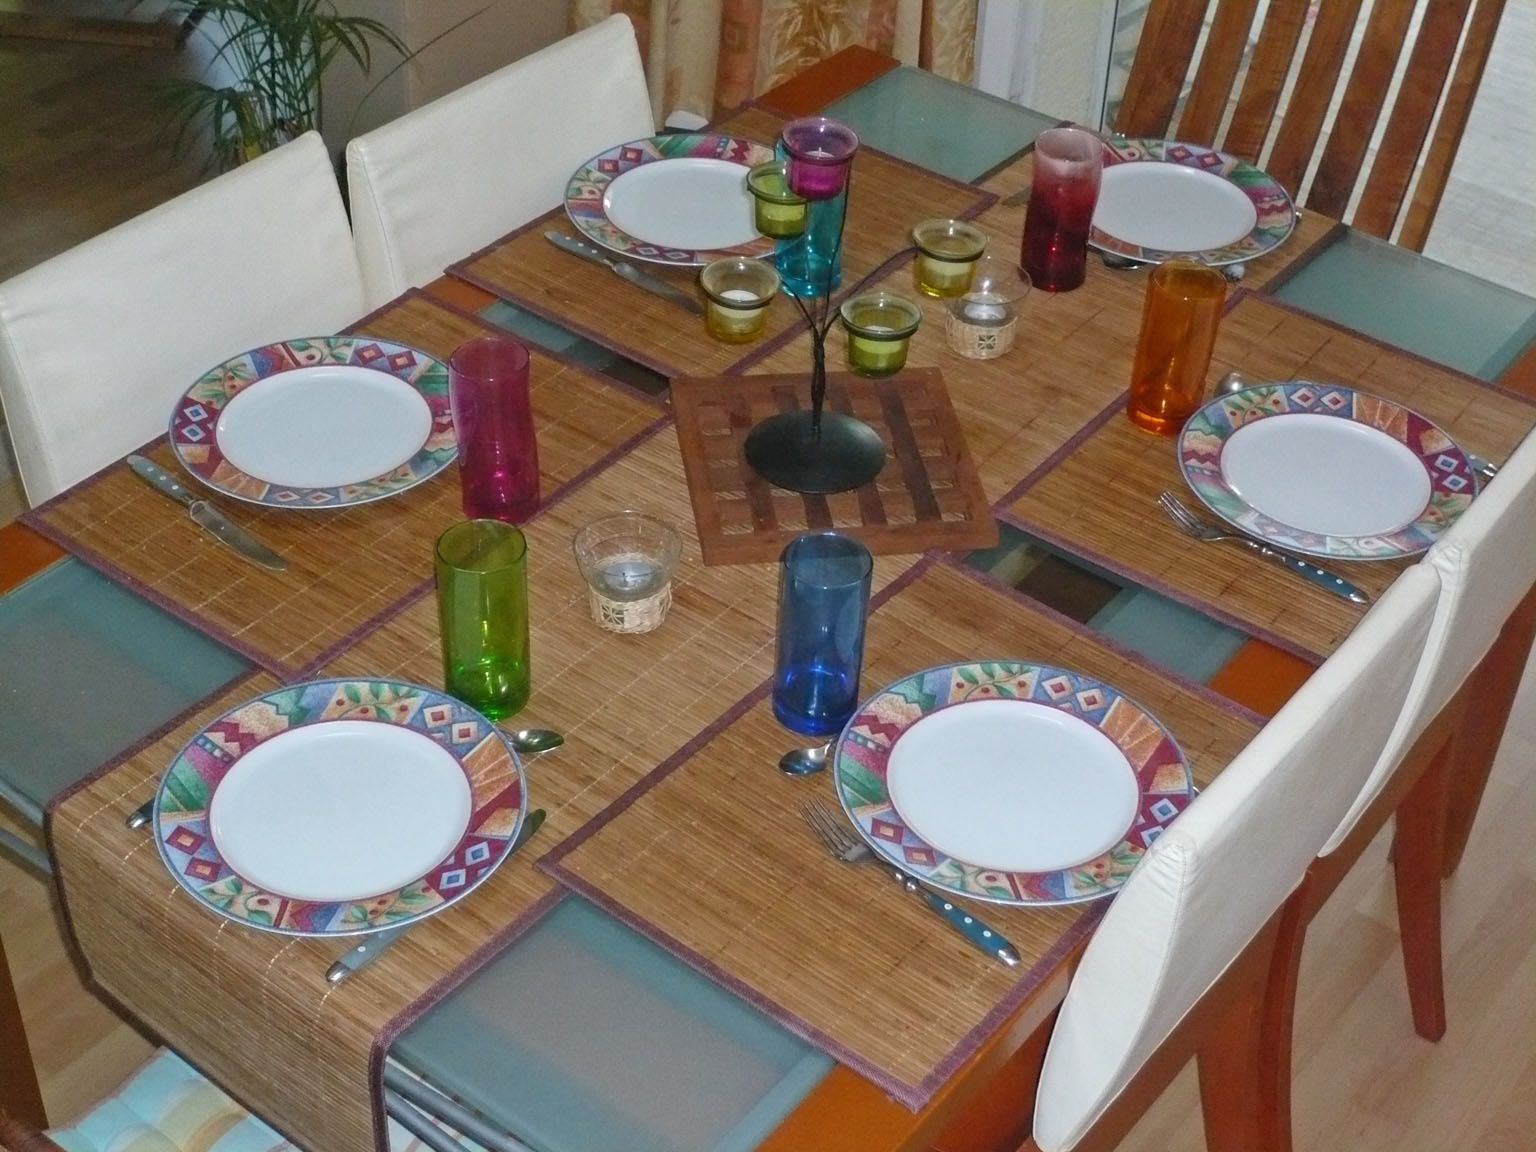 Bien pr senter une table la disposition la composition for Disposition des verres sur la table